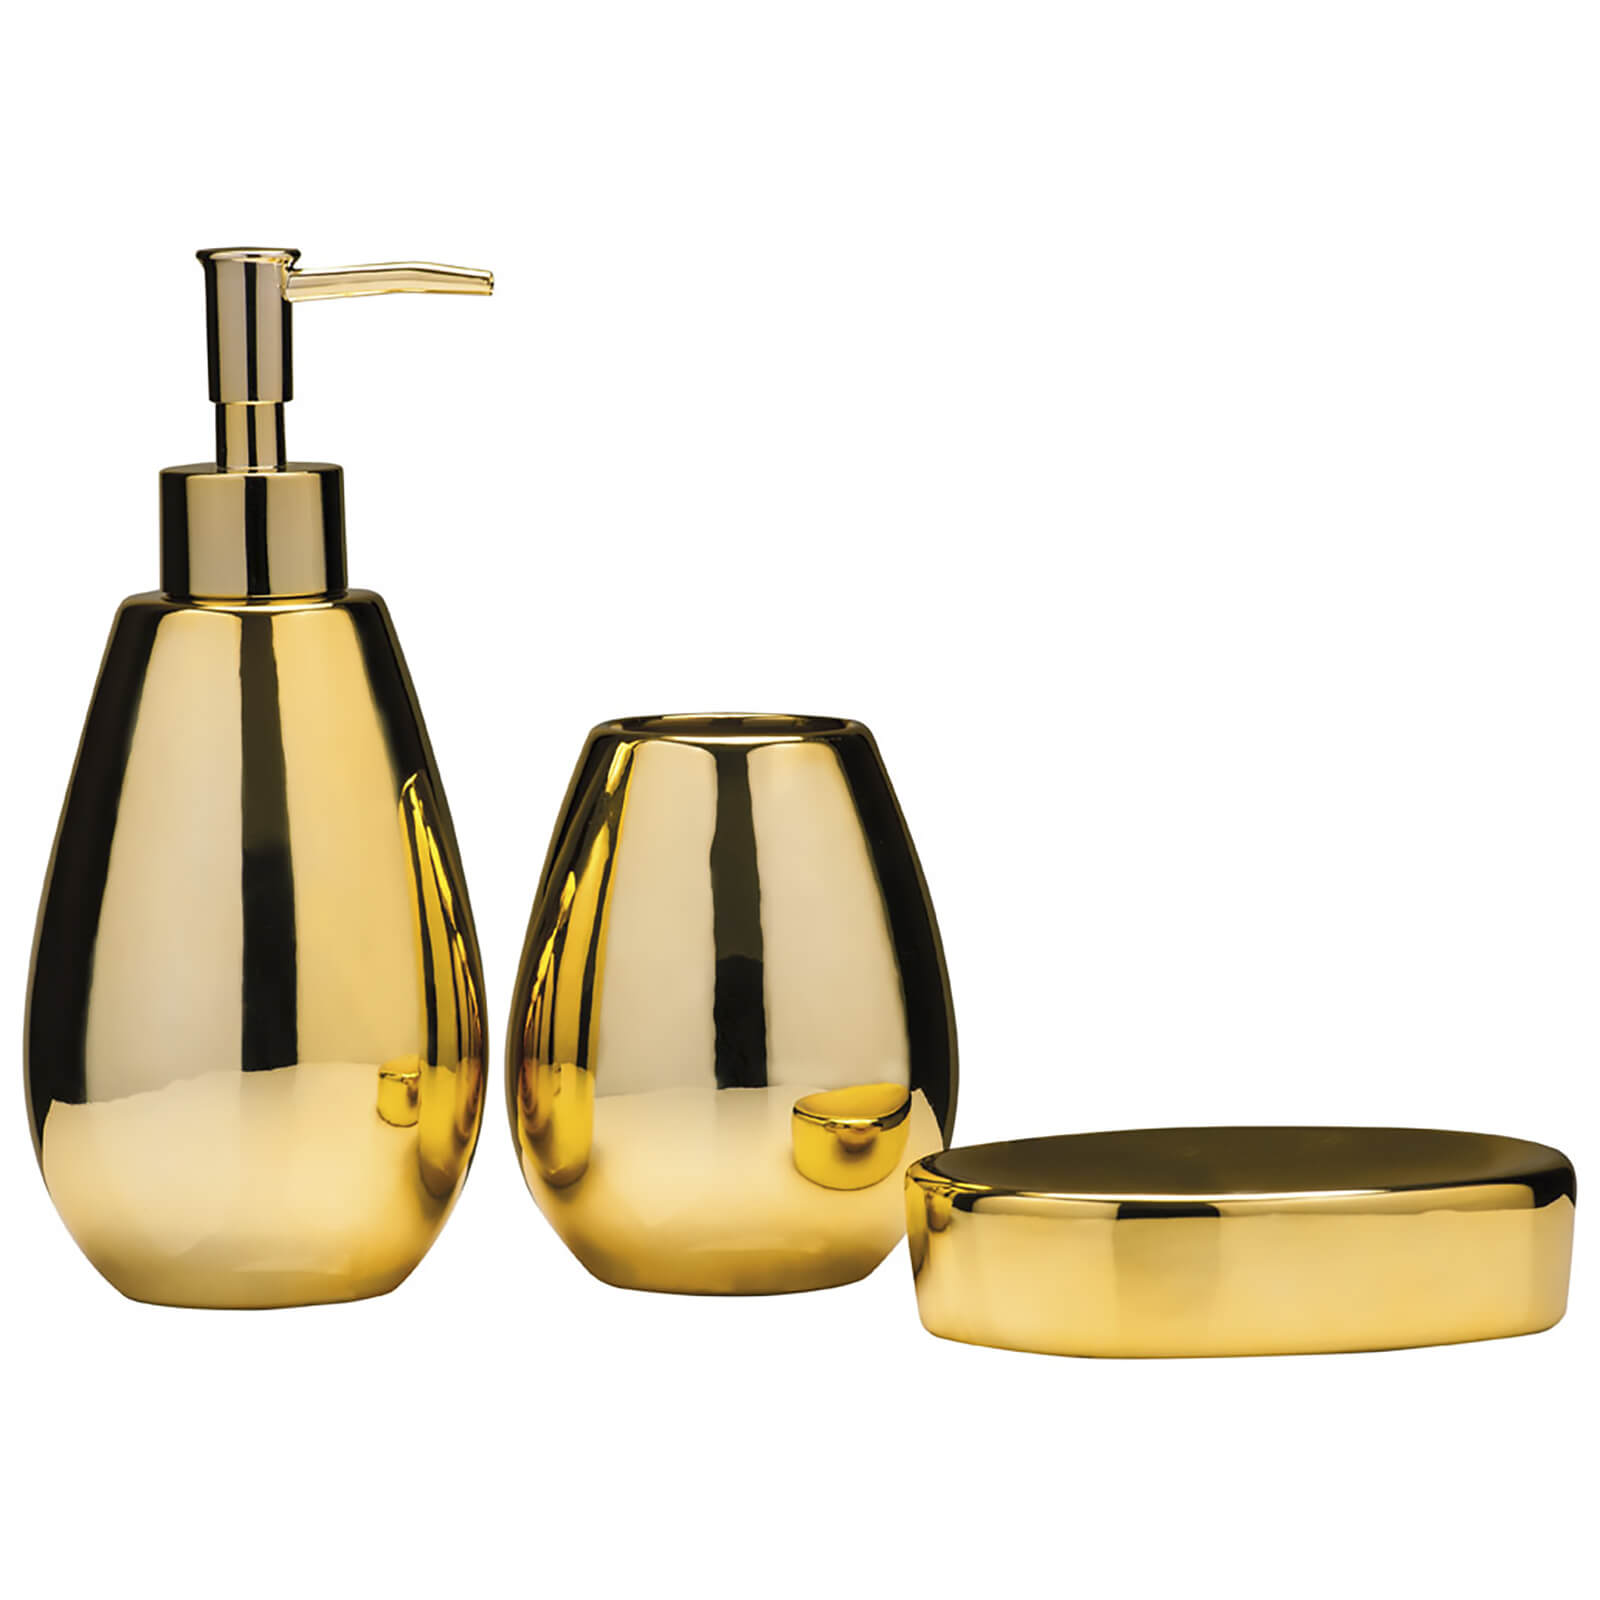 Fifty Five South Magpie Bathroom Set - Dolomite Gold (Set of 3)